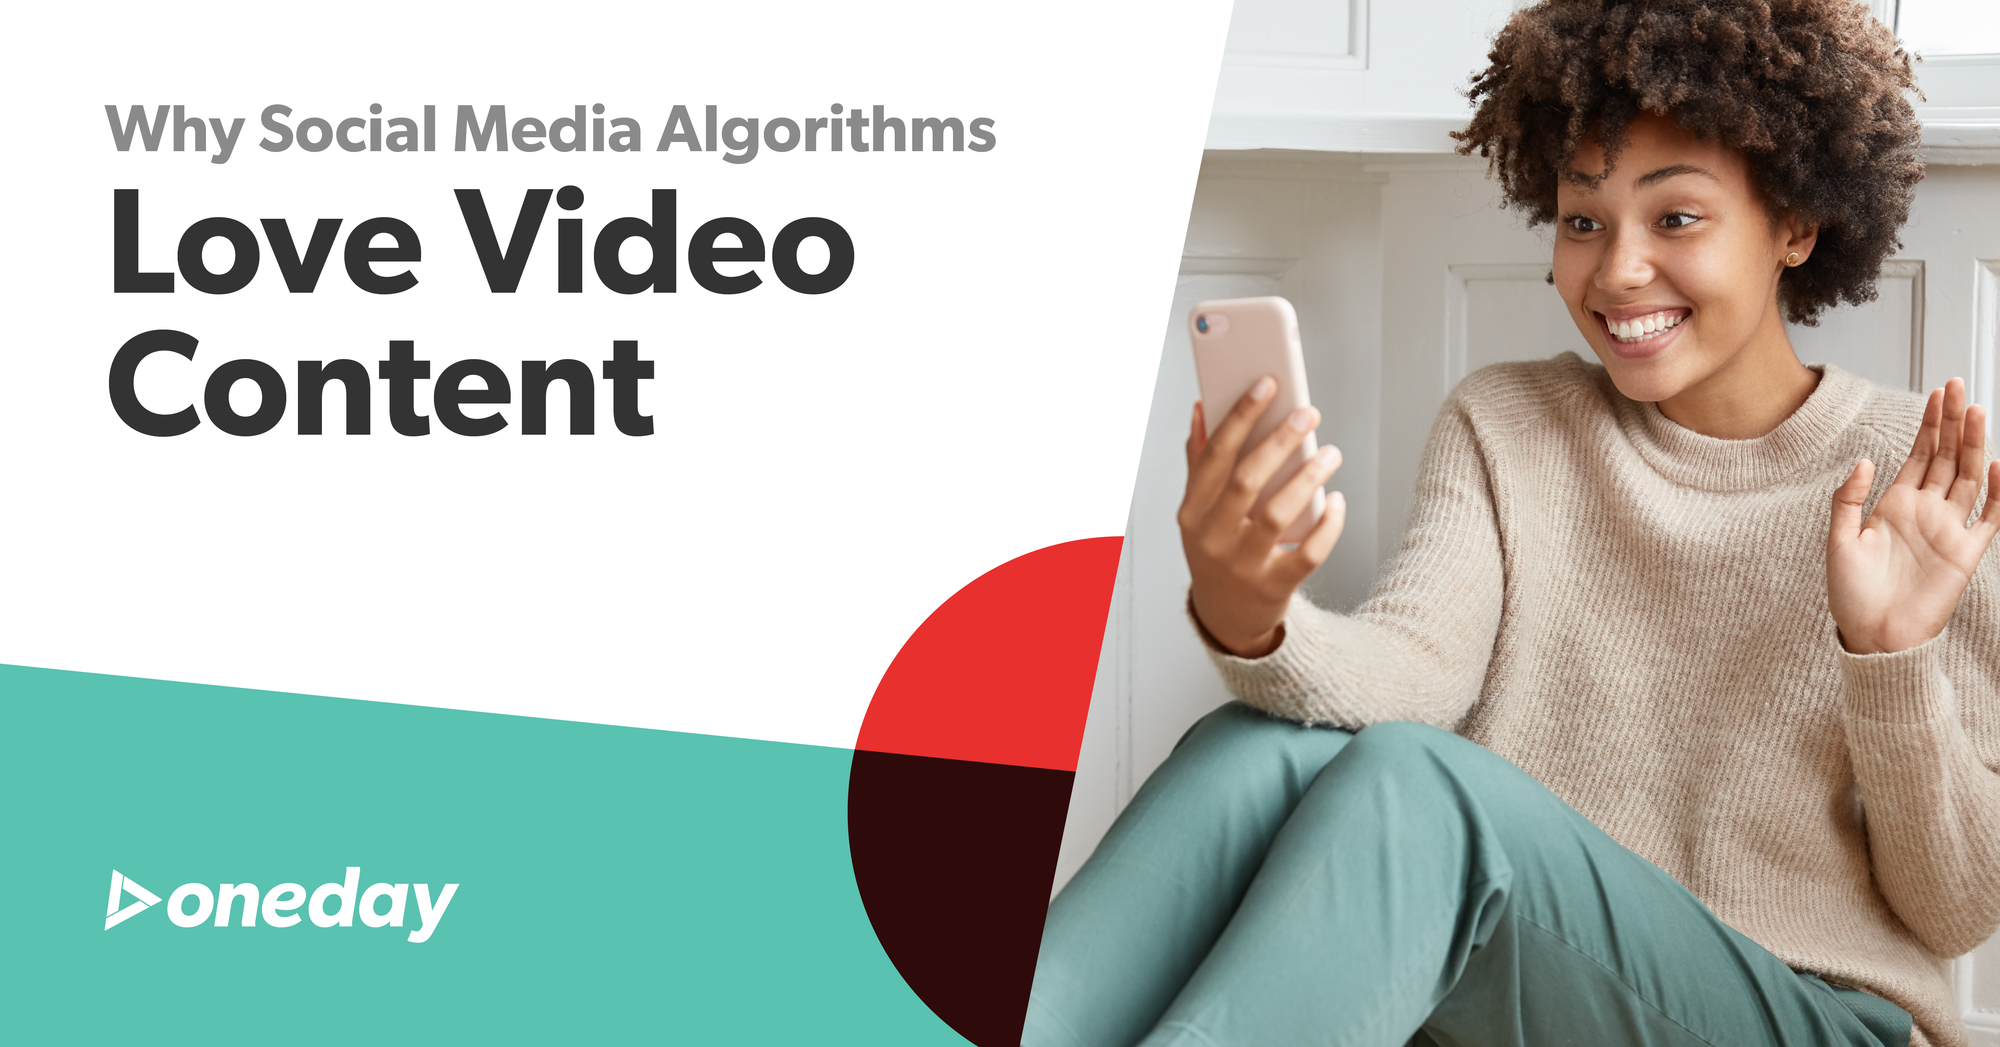 A look at why video is such an ideal fit for social media platforms as well as some eye-opening statistics on the benefits of social media video marketing.